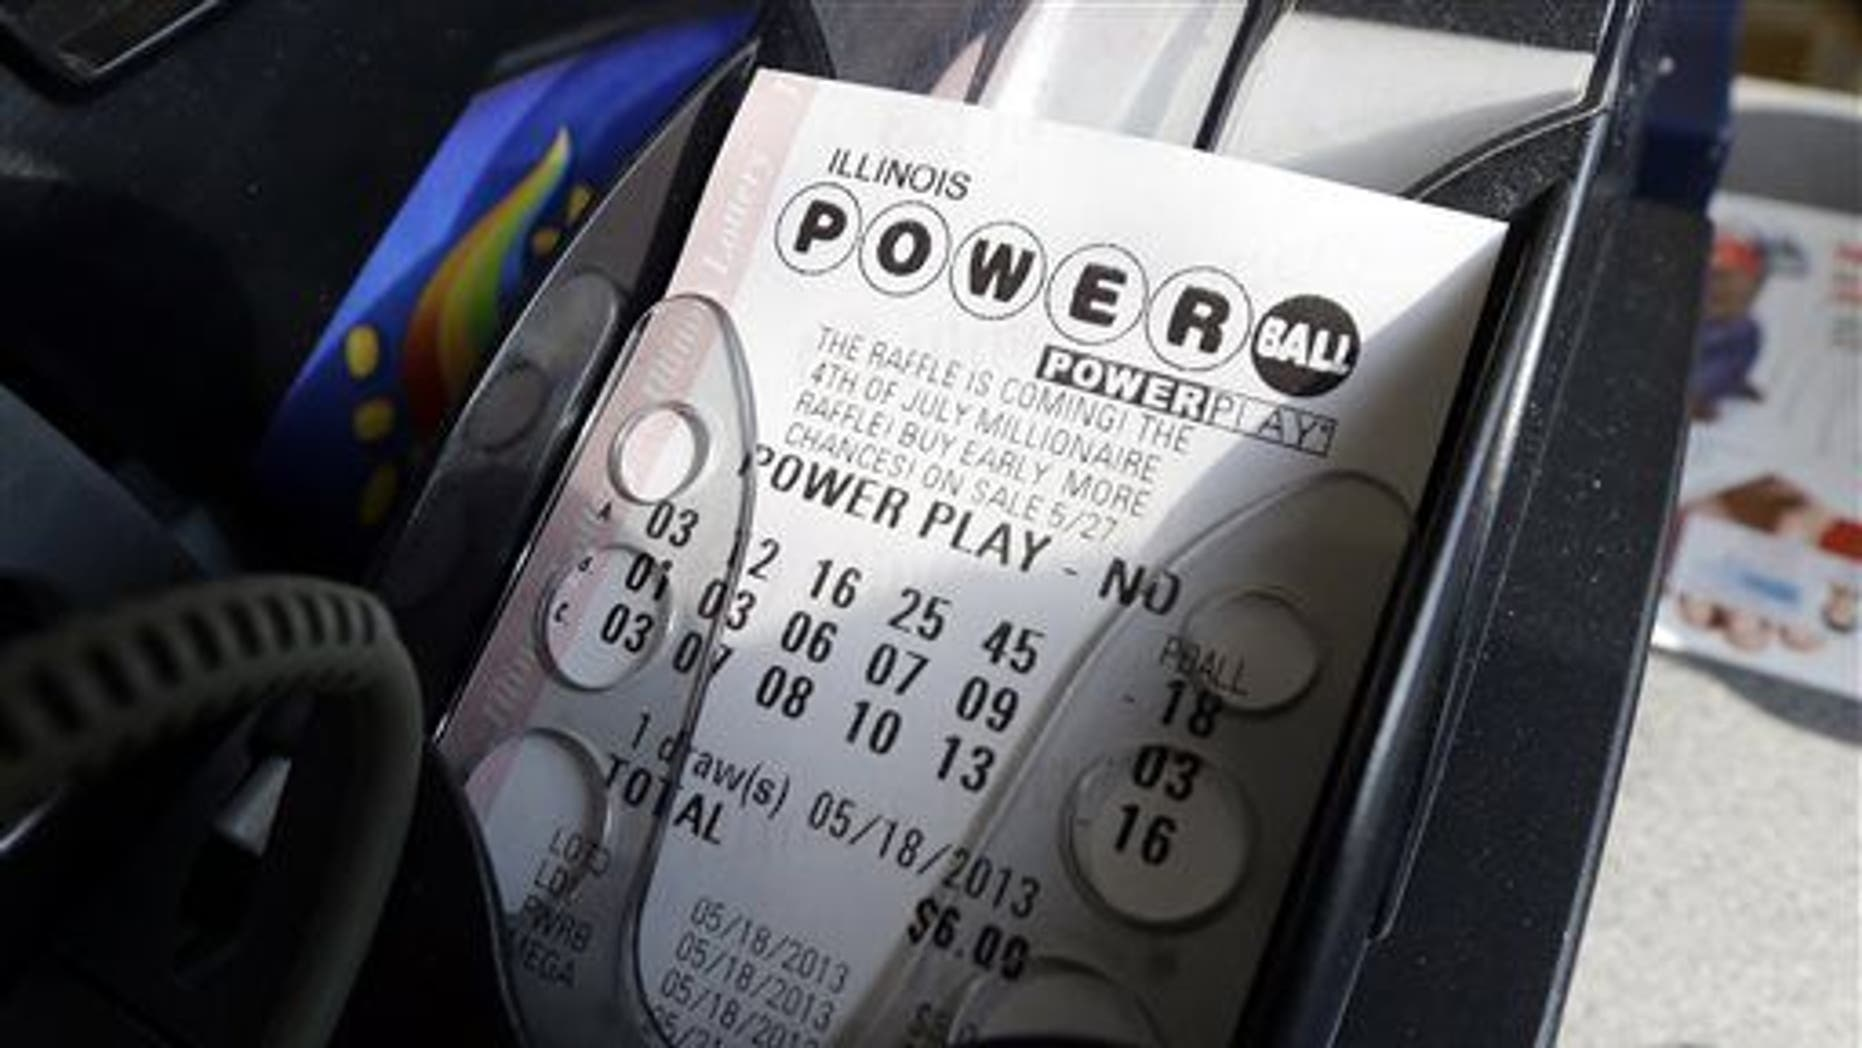 A Powerball lottery ticket is printed out of a lottery machine at a convenience store in Illinois.